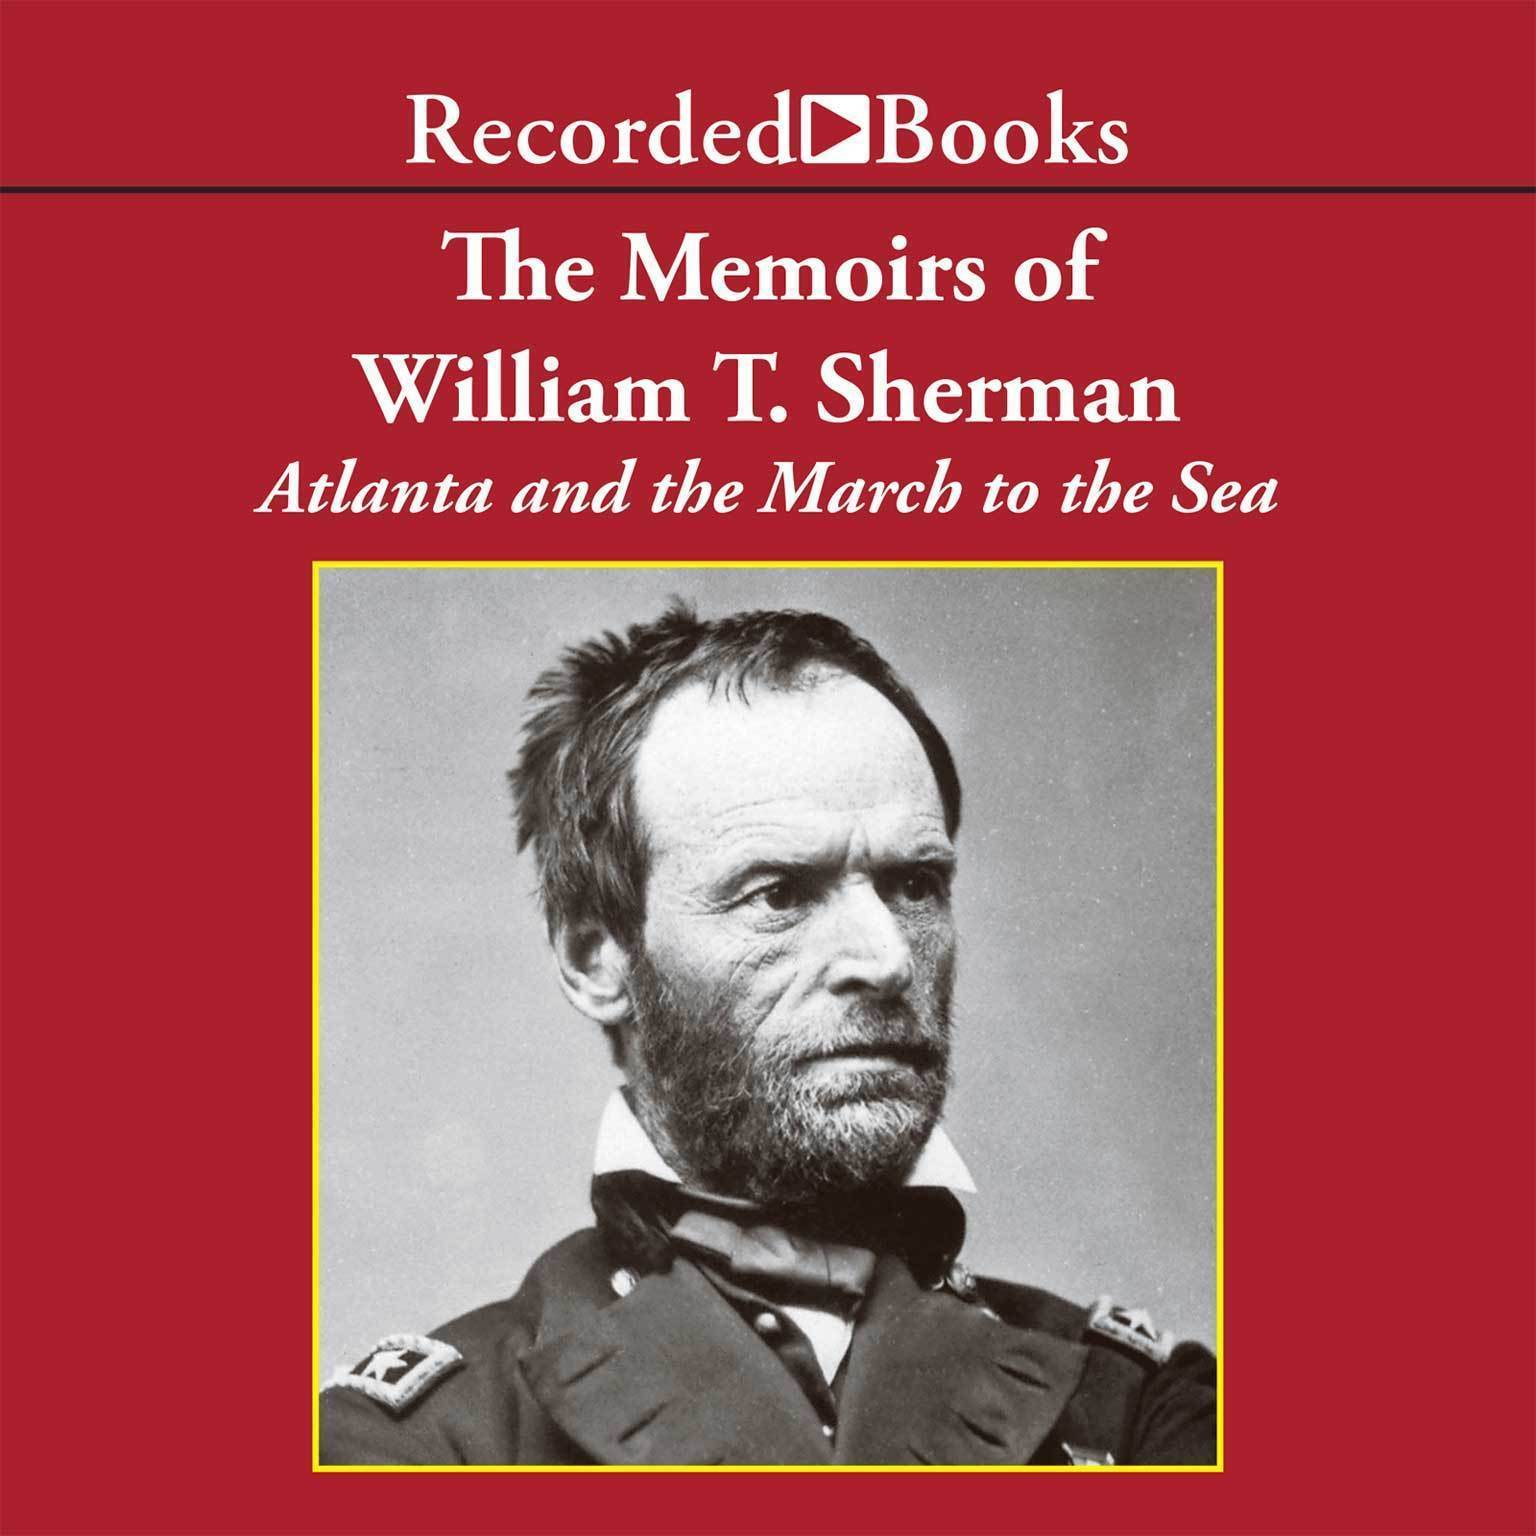 Printable The Memoirs of William T. Sherman—Excerpts: Atlanta and the March to the Sea Audiobook Cover Art